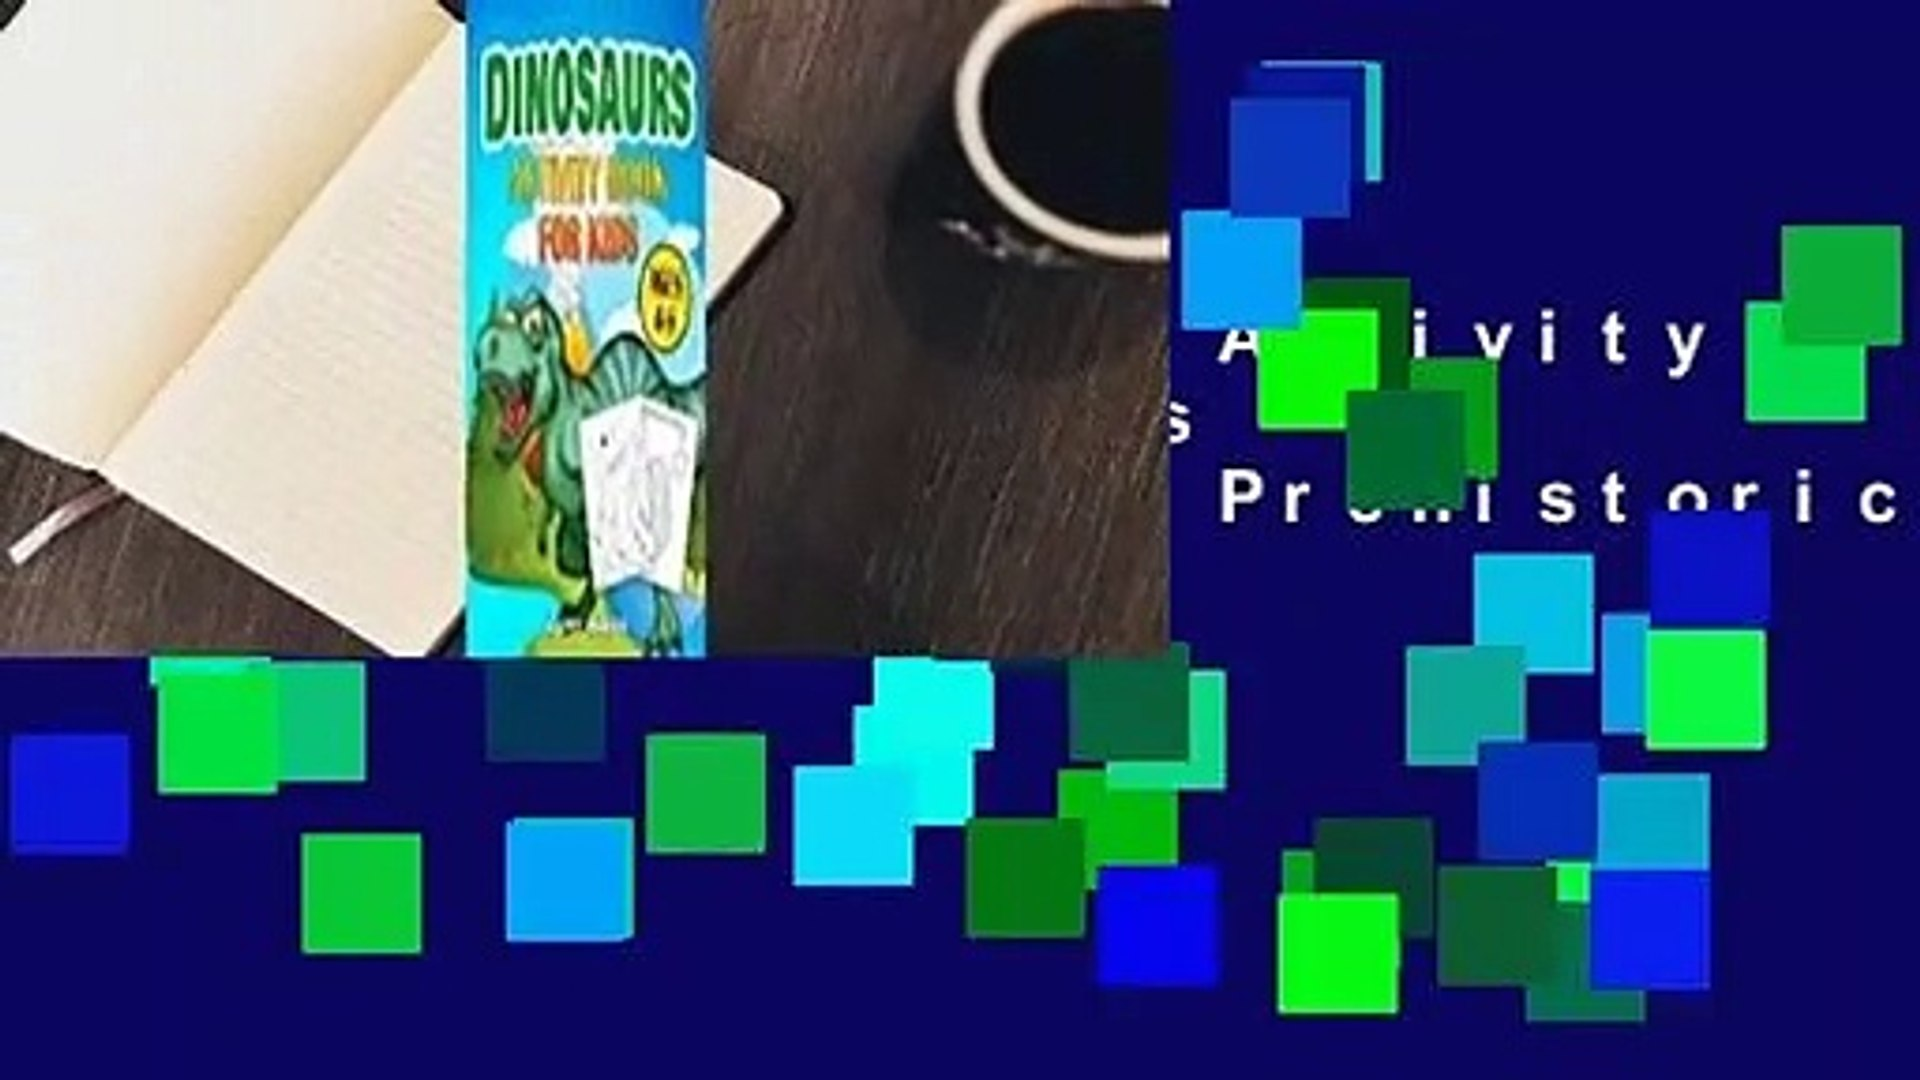 [Read] Dinosaurs Activity Book For Kids Ages 4-8: The Ultimate Prehistoric Activity Book For